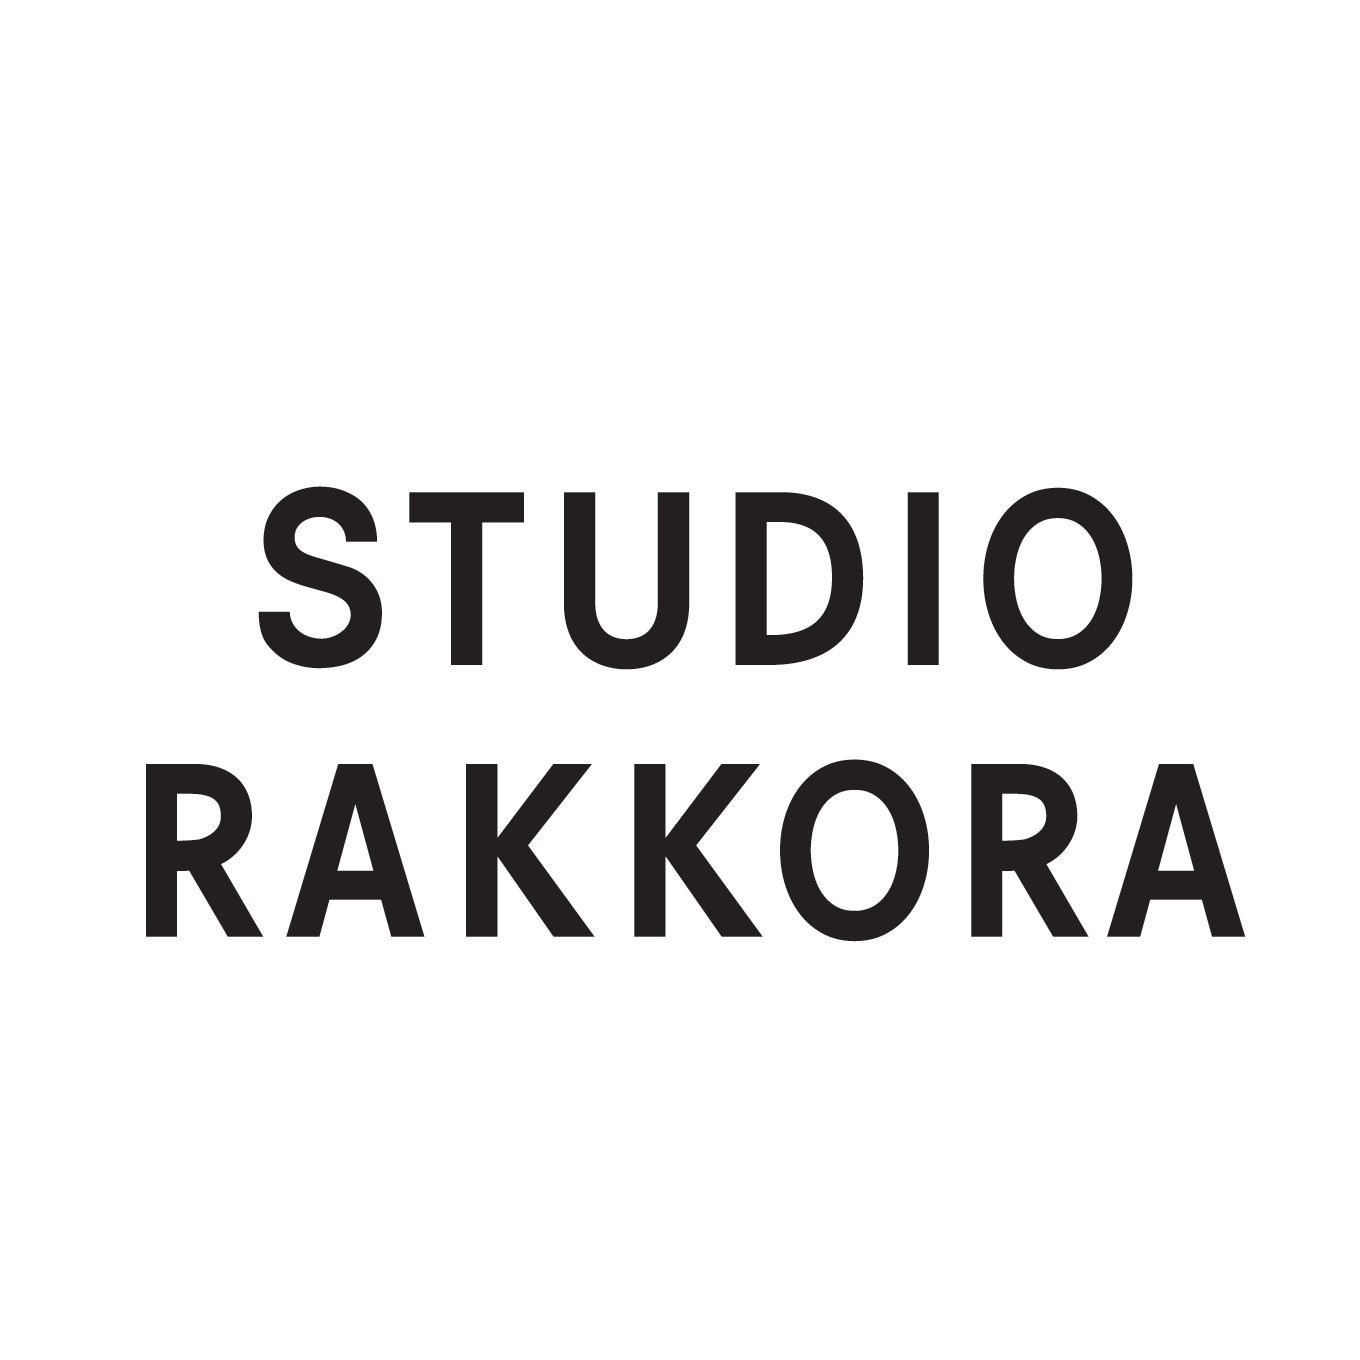 STUDIO RAKKORA ARCHITECTS